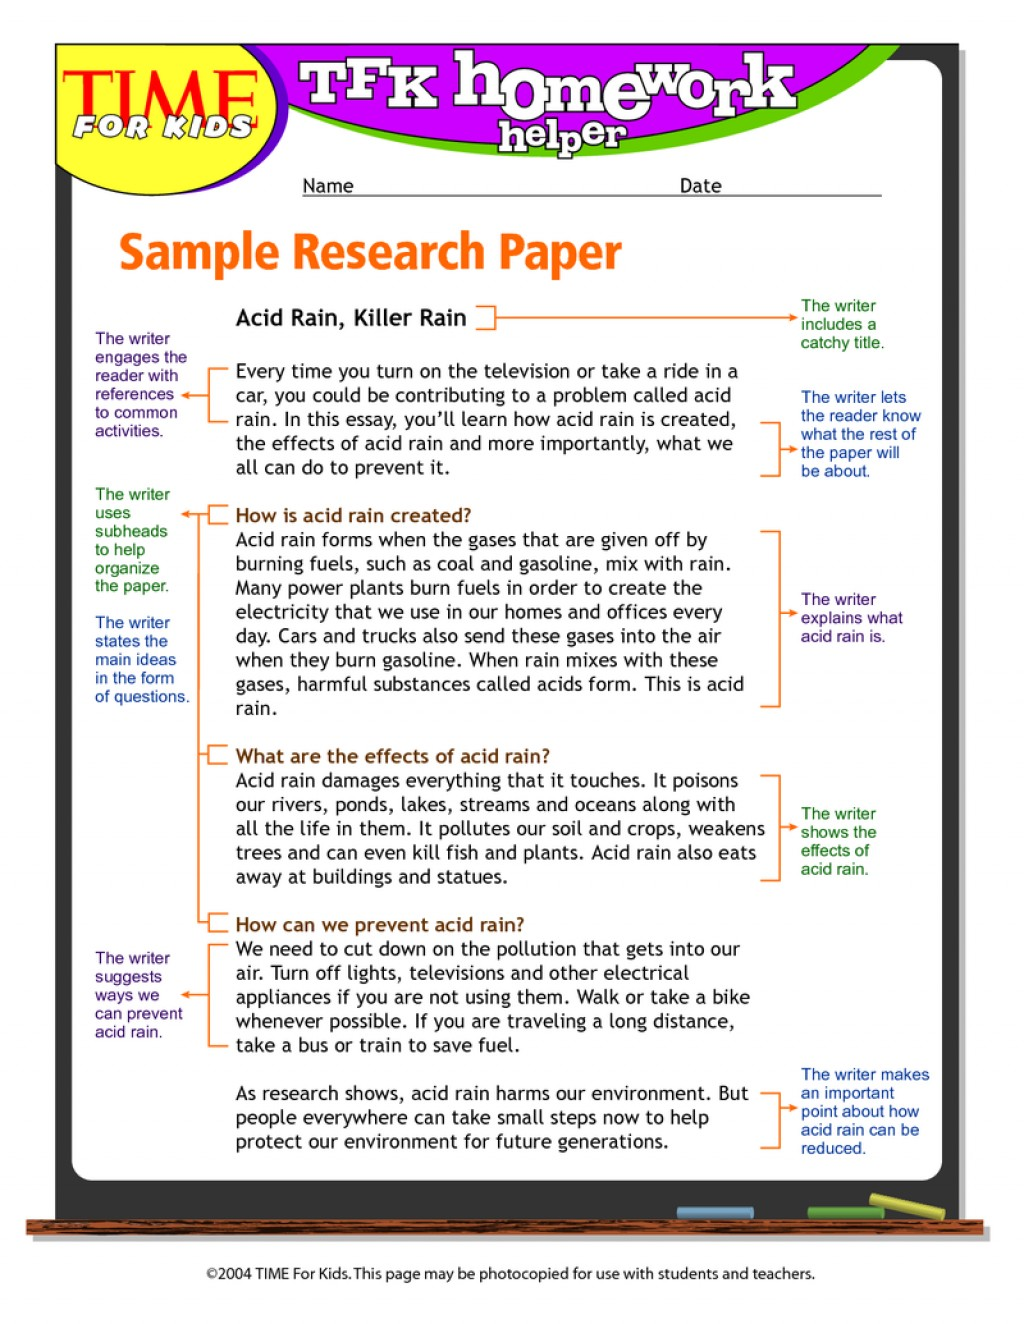 009 How To Do Research Top A Paper On Person Book Make Title Page Large